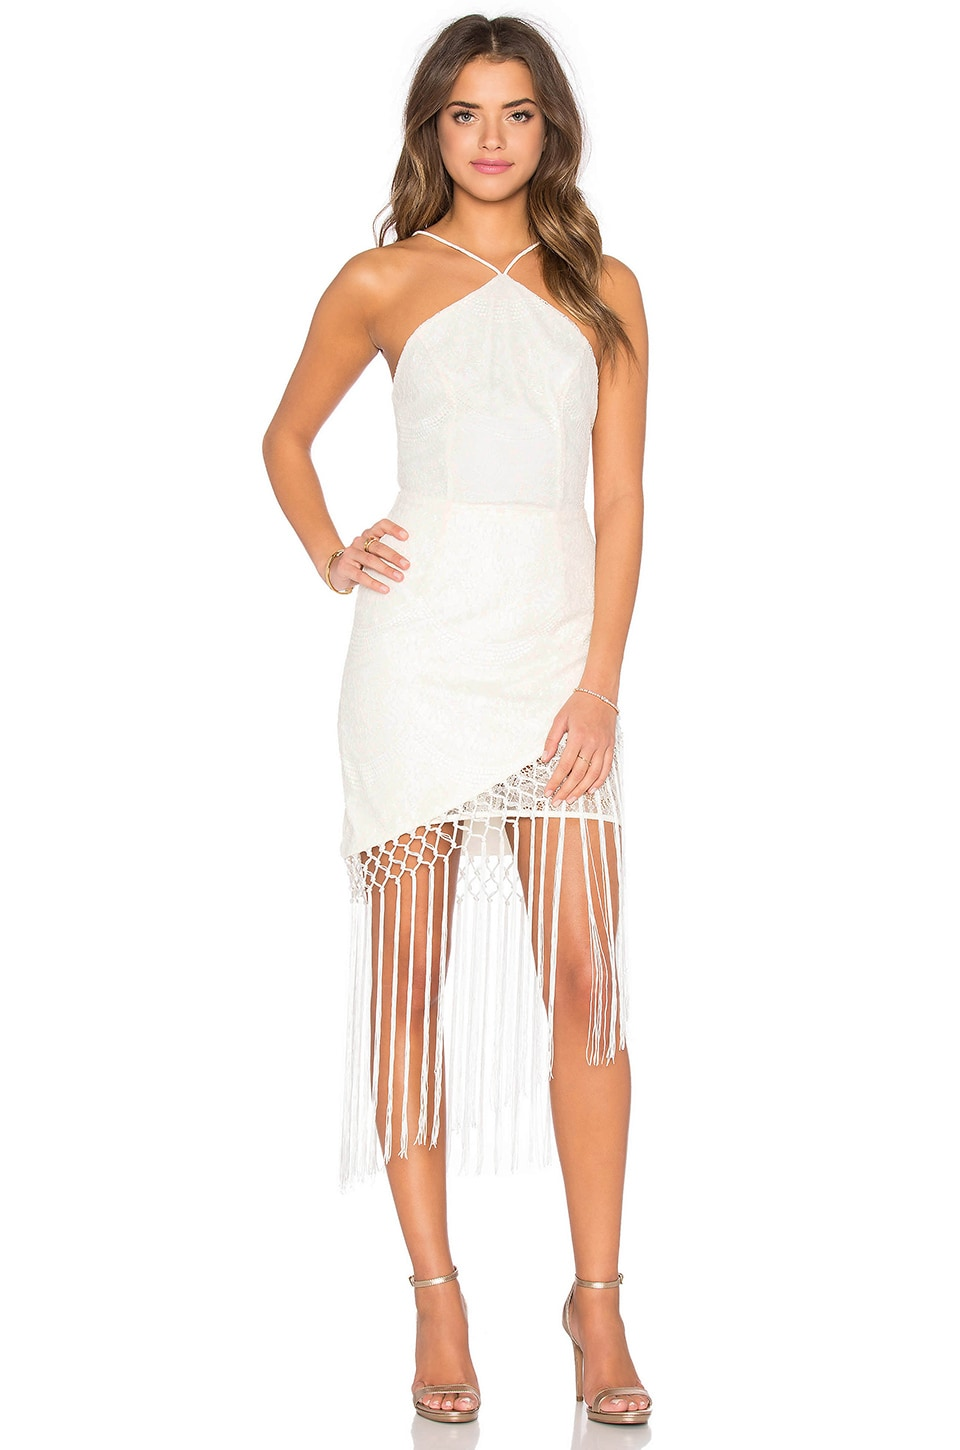 Tularosa x REVOLVE The Napa Dress in White